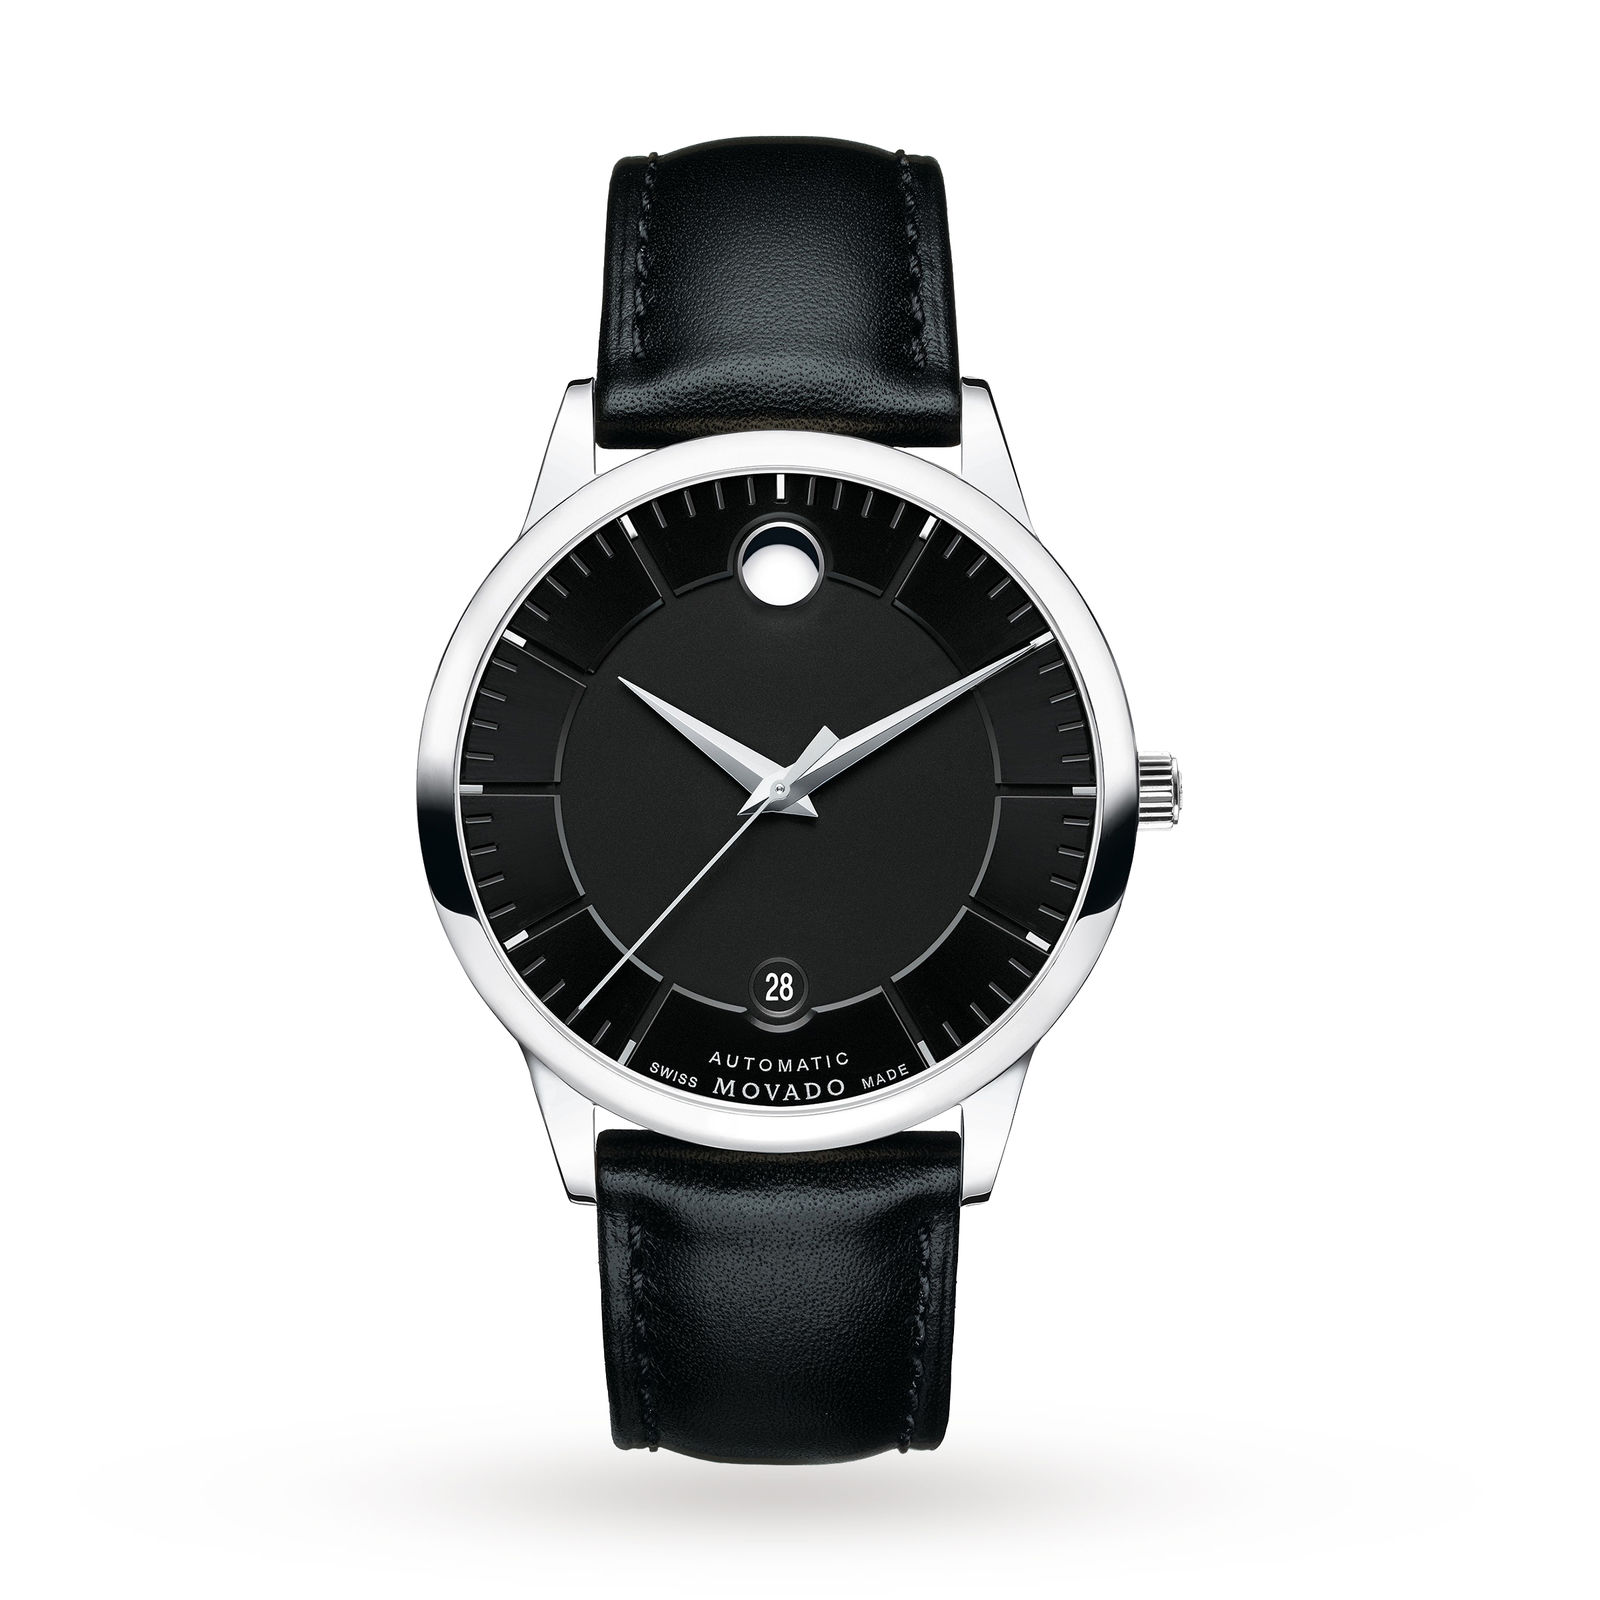 Movado Men's 1881 Automatic Watch